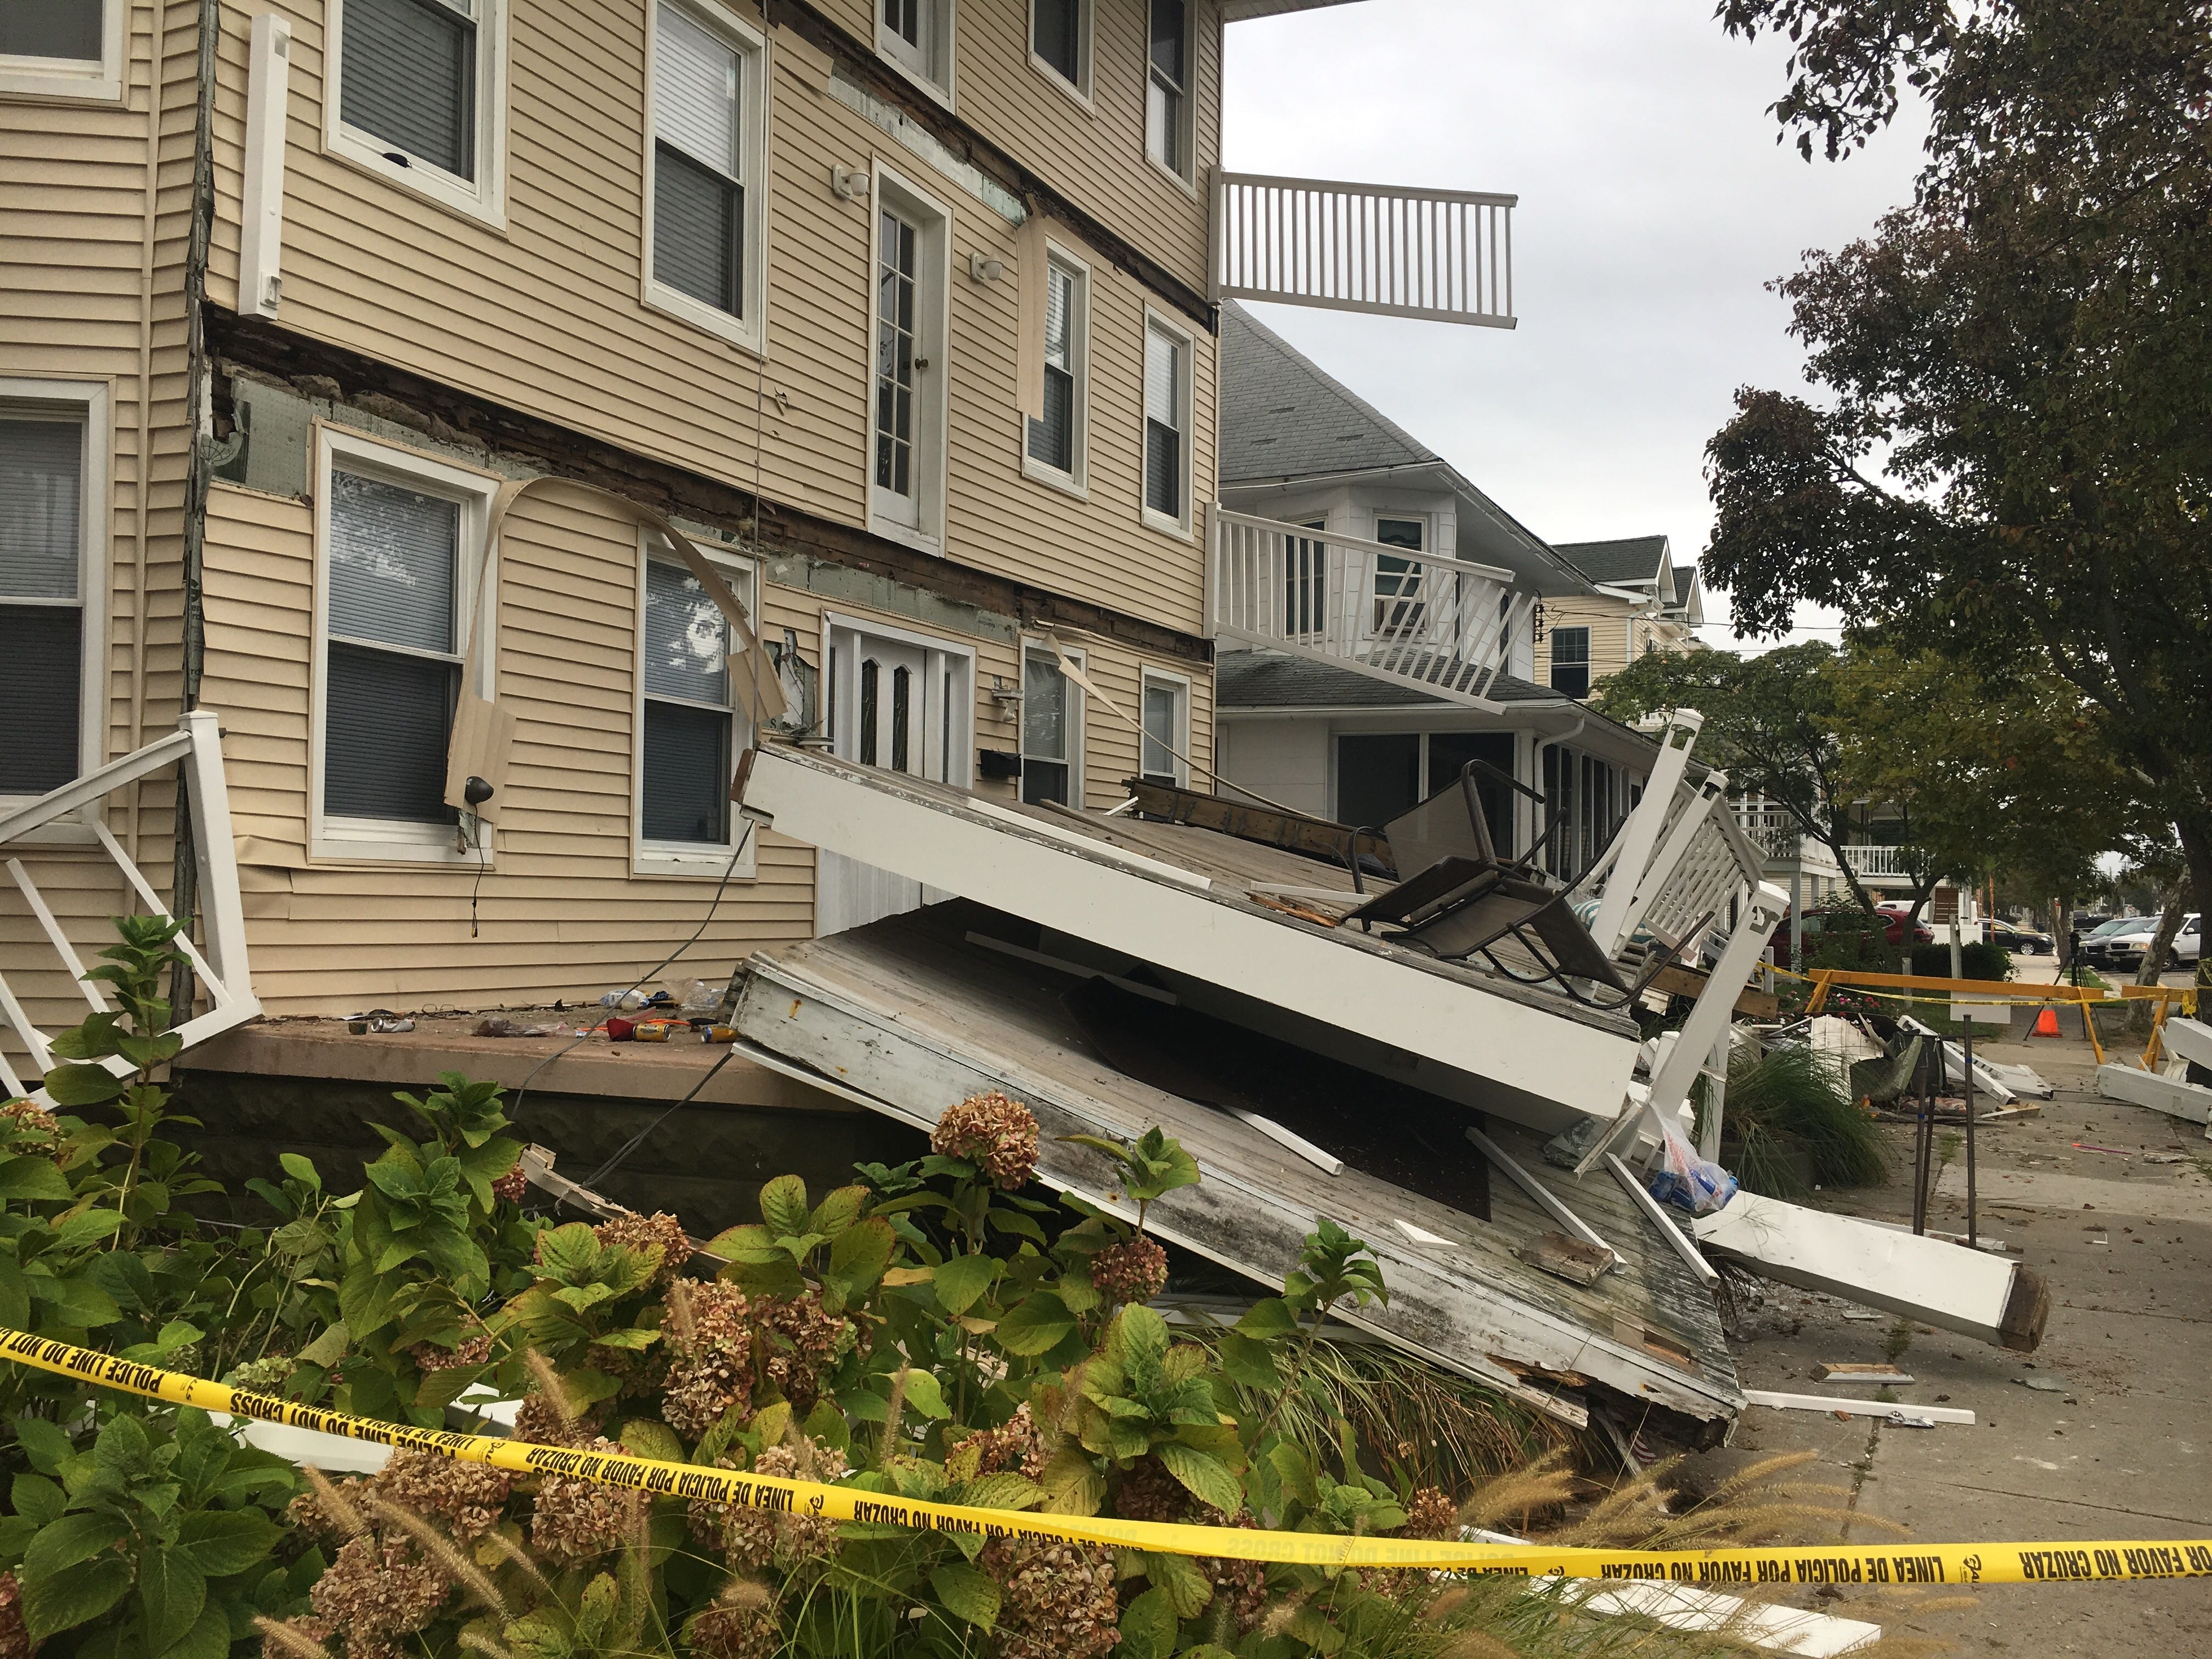 2 remain hospitalized after multiple decks collapse at Shore beach house